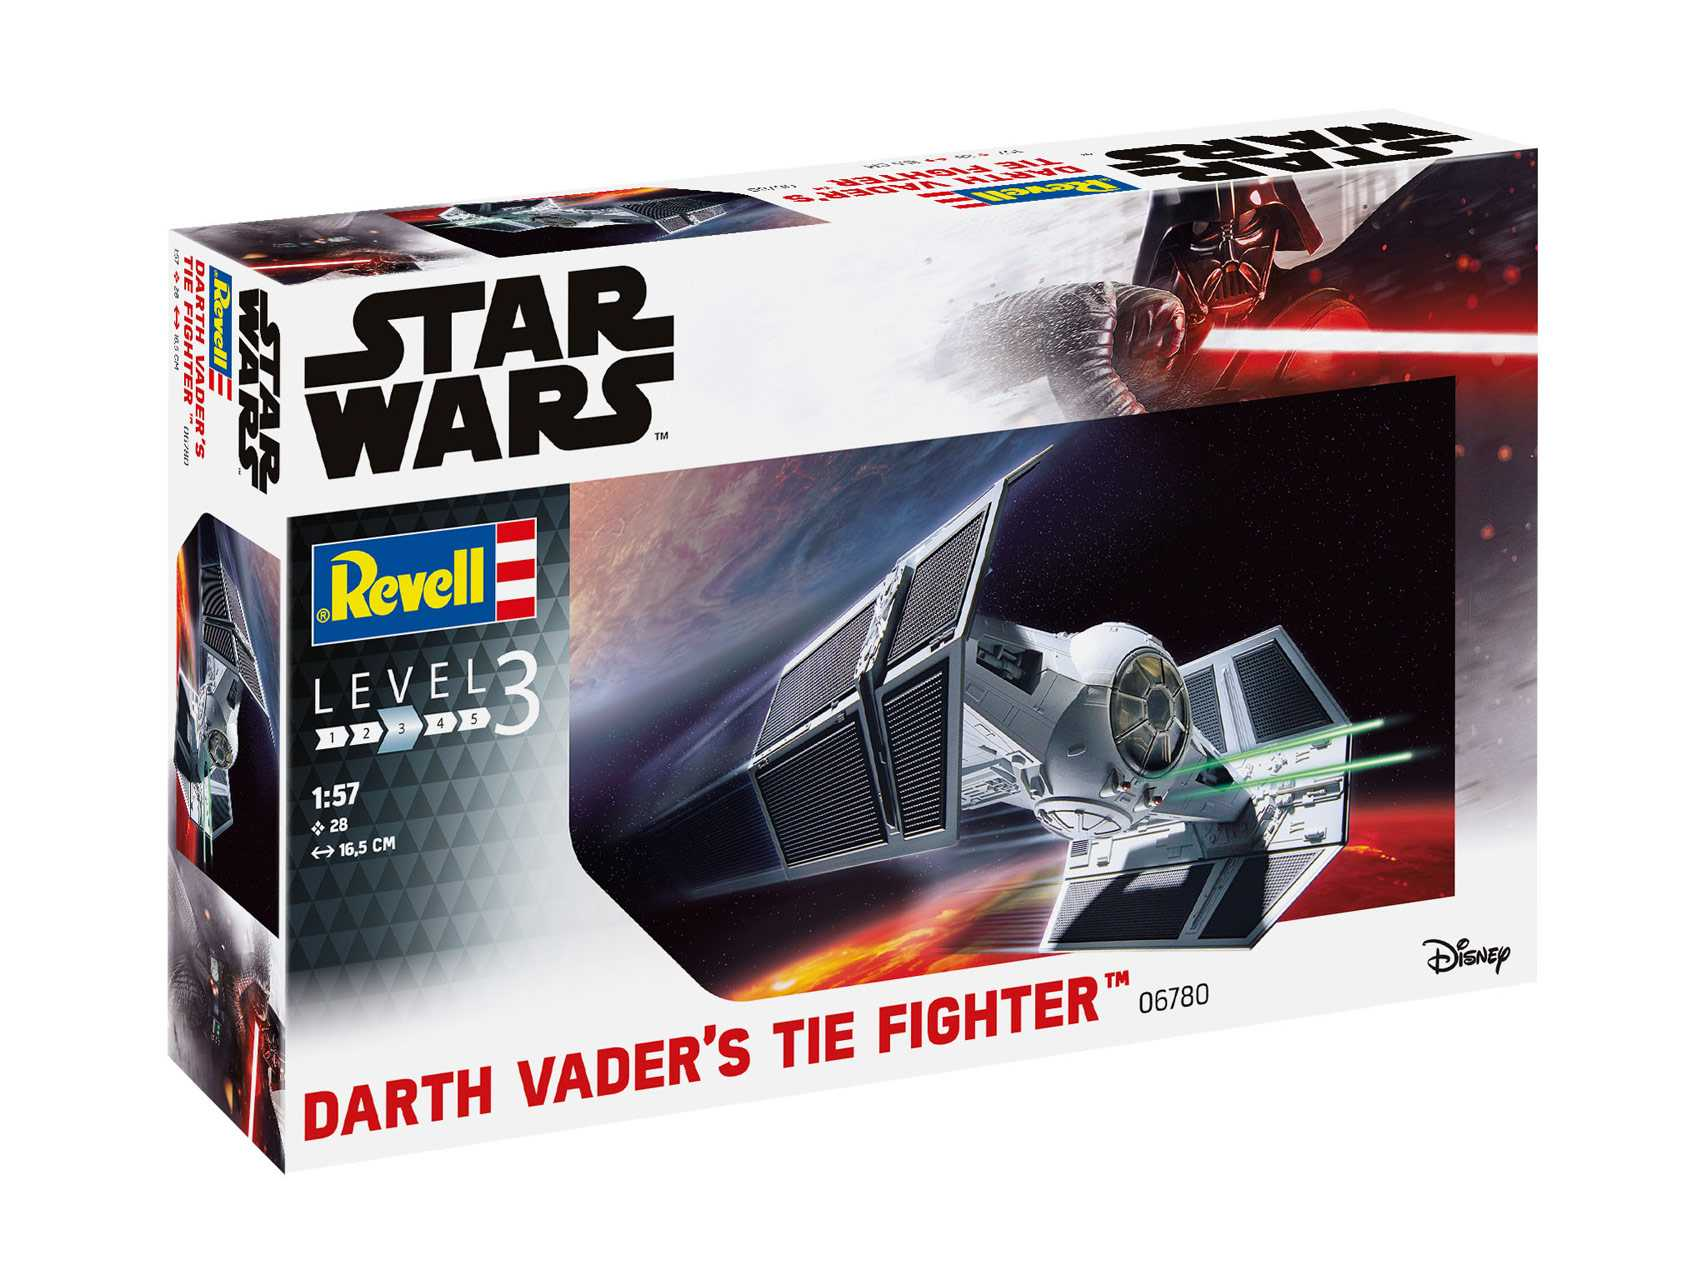 1:57 Darth Vader's TIE Fighter (Star Wars)